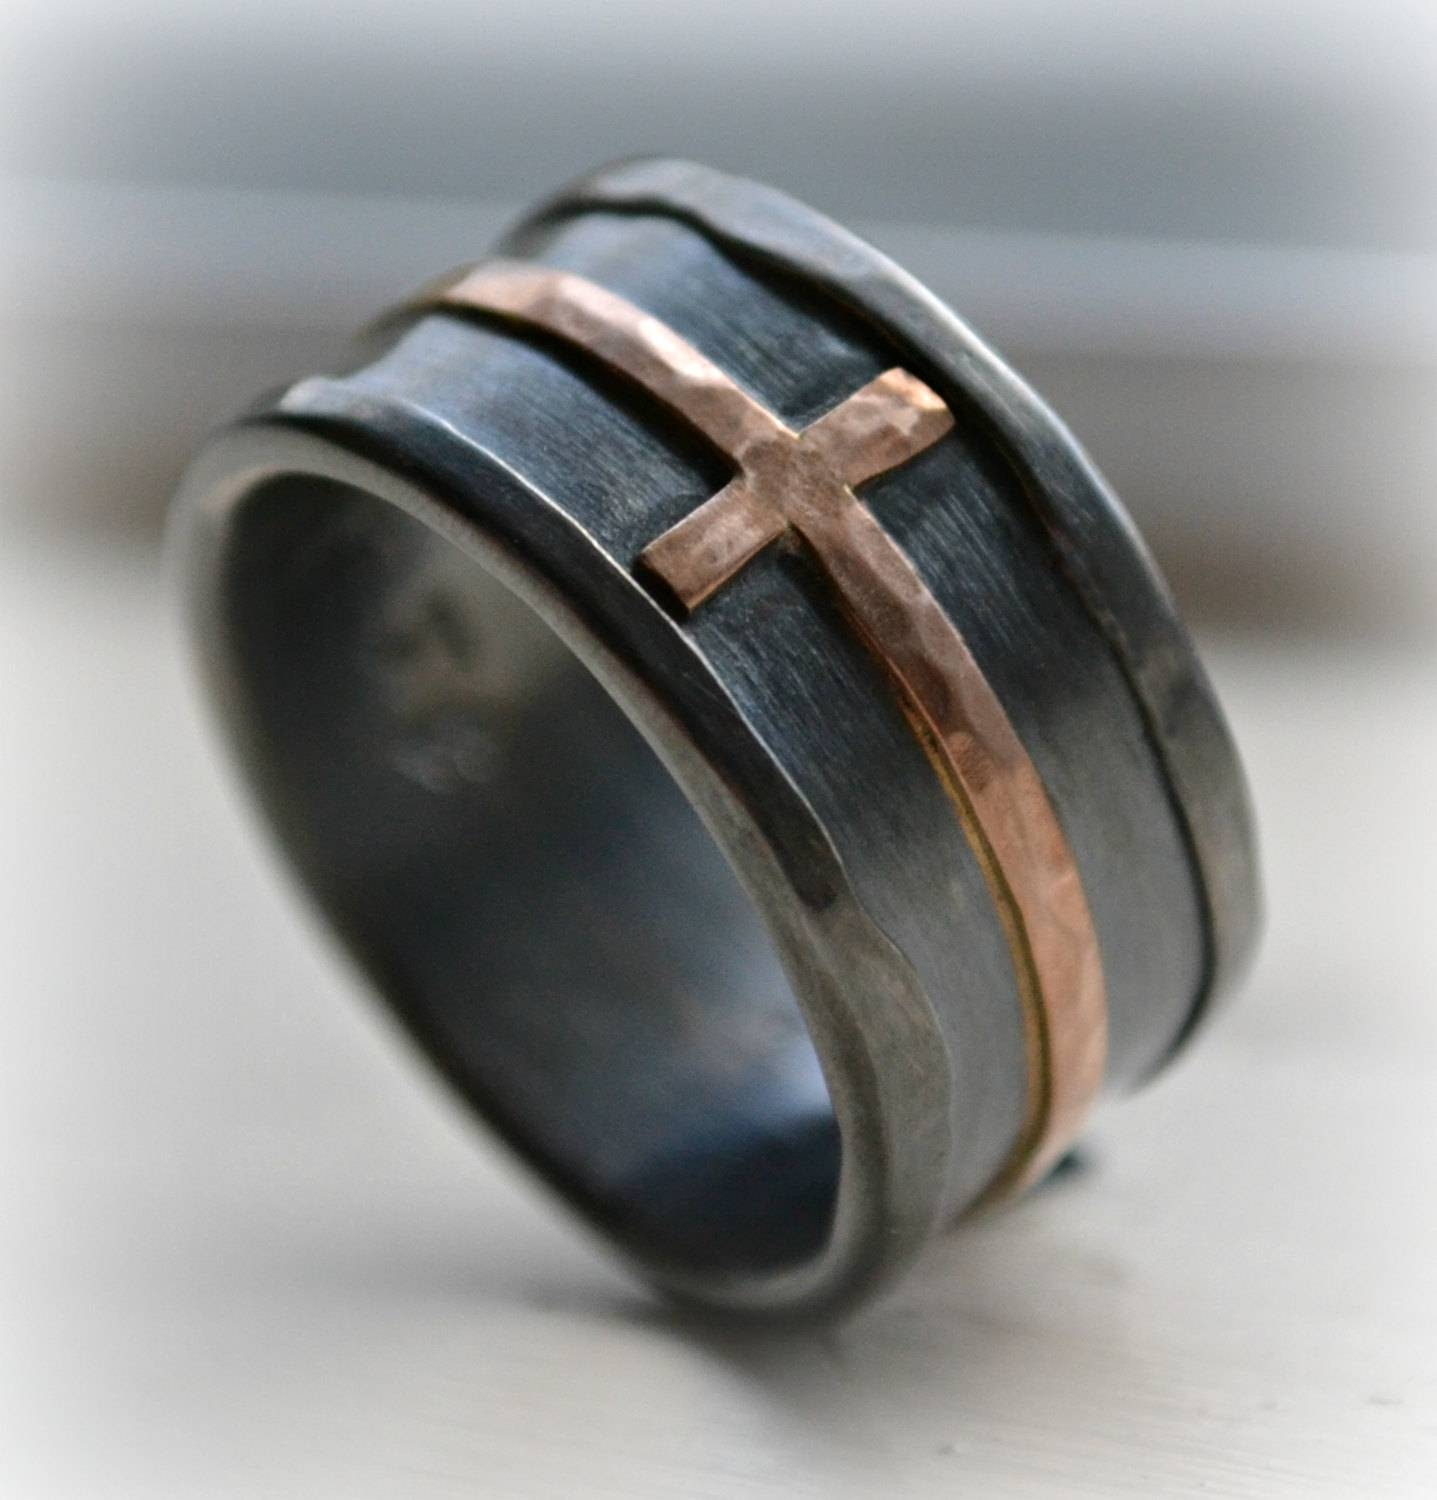 Mens Cross Wedding Band Rustic Hammered Cross Ring Oxidized With Men's Wedding Bands With Cross (View 3 of 15)